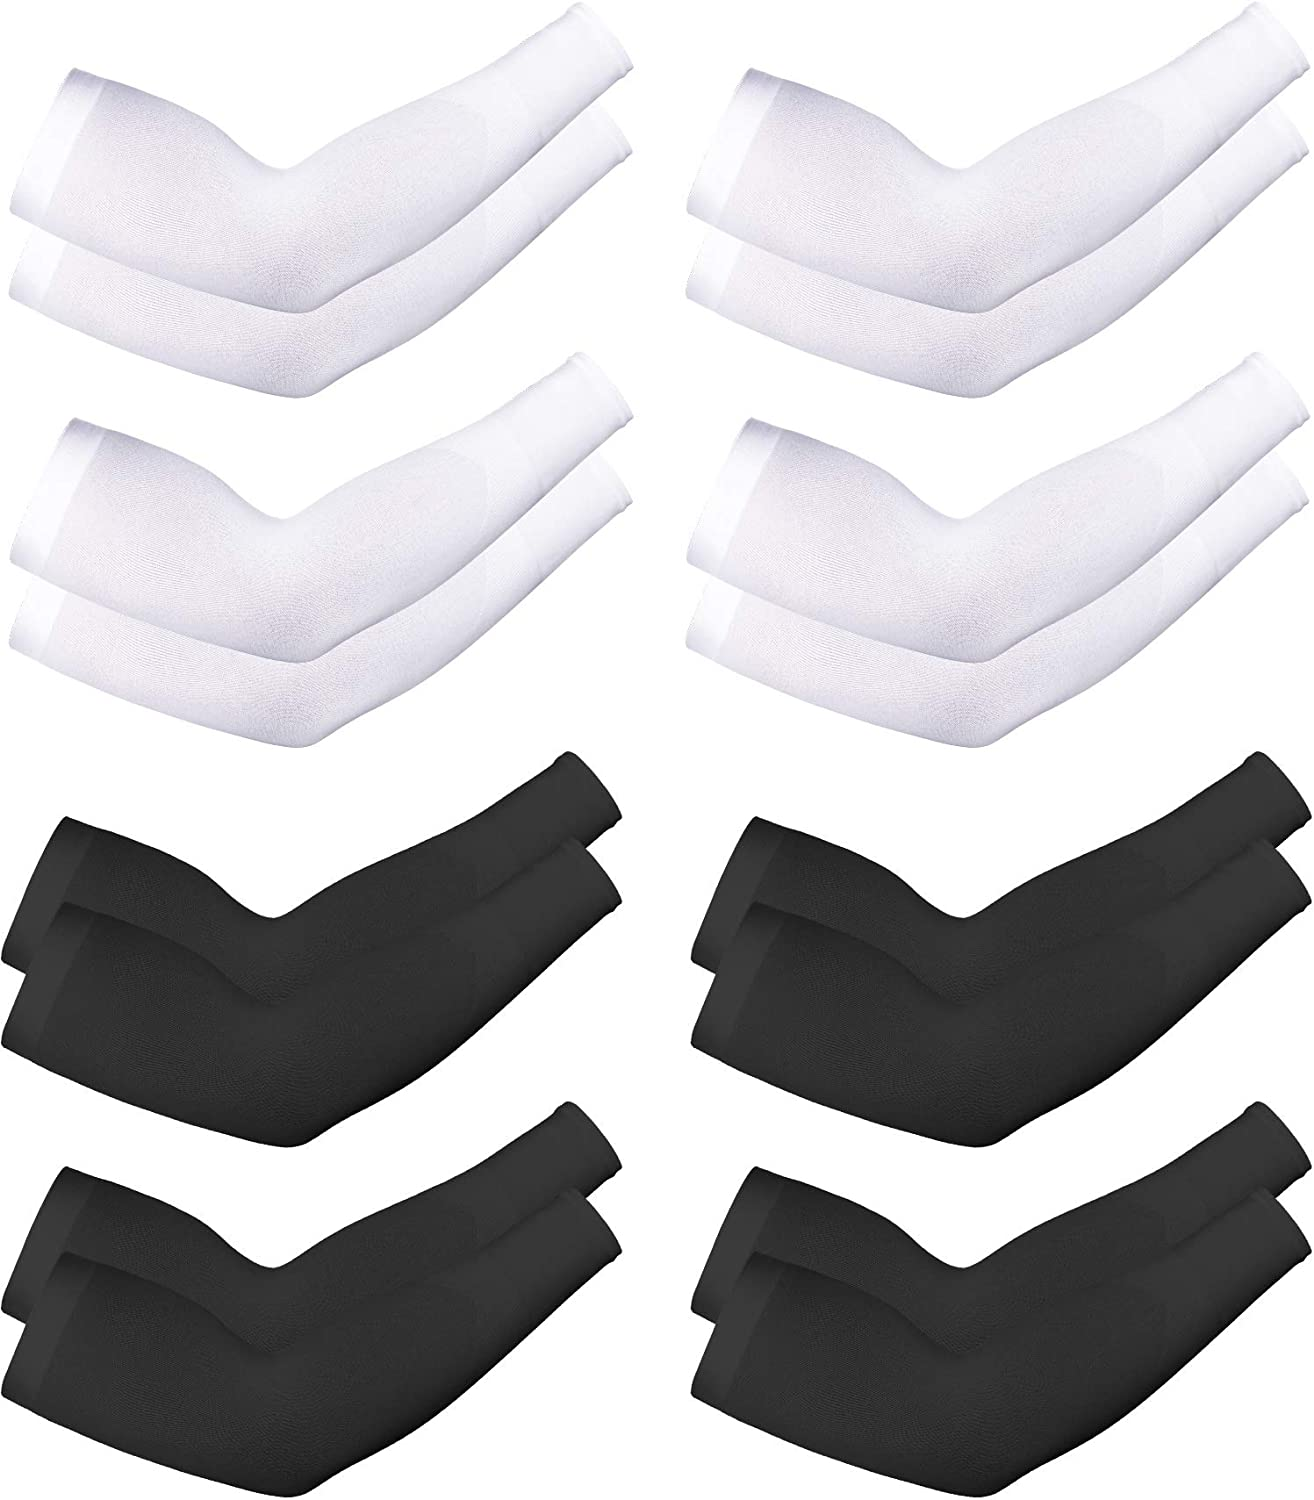 1Pair//4 pairs Wind Goal Summer Cooling Sleeves,UV Protection Arm Sleeves,Driving Arm Sleeves,Sleeves for Outdoor Sports